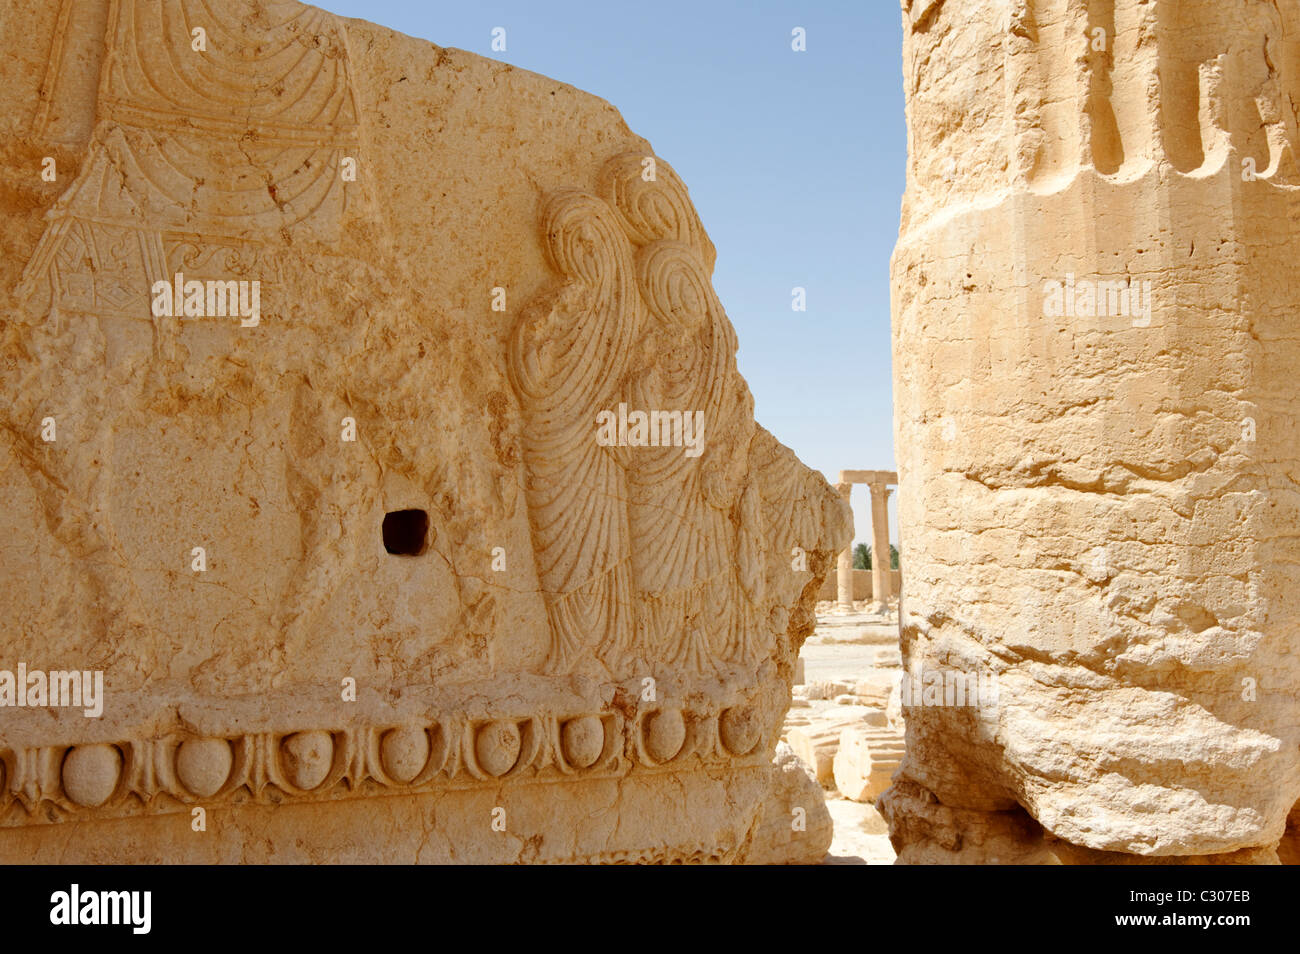 Palmyra Syria A Bas Relief That Is A Marvellously Expressive Piece